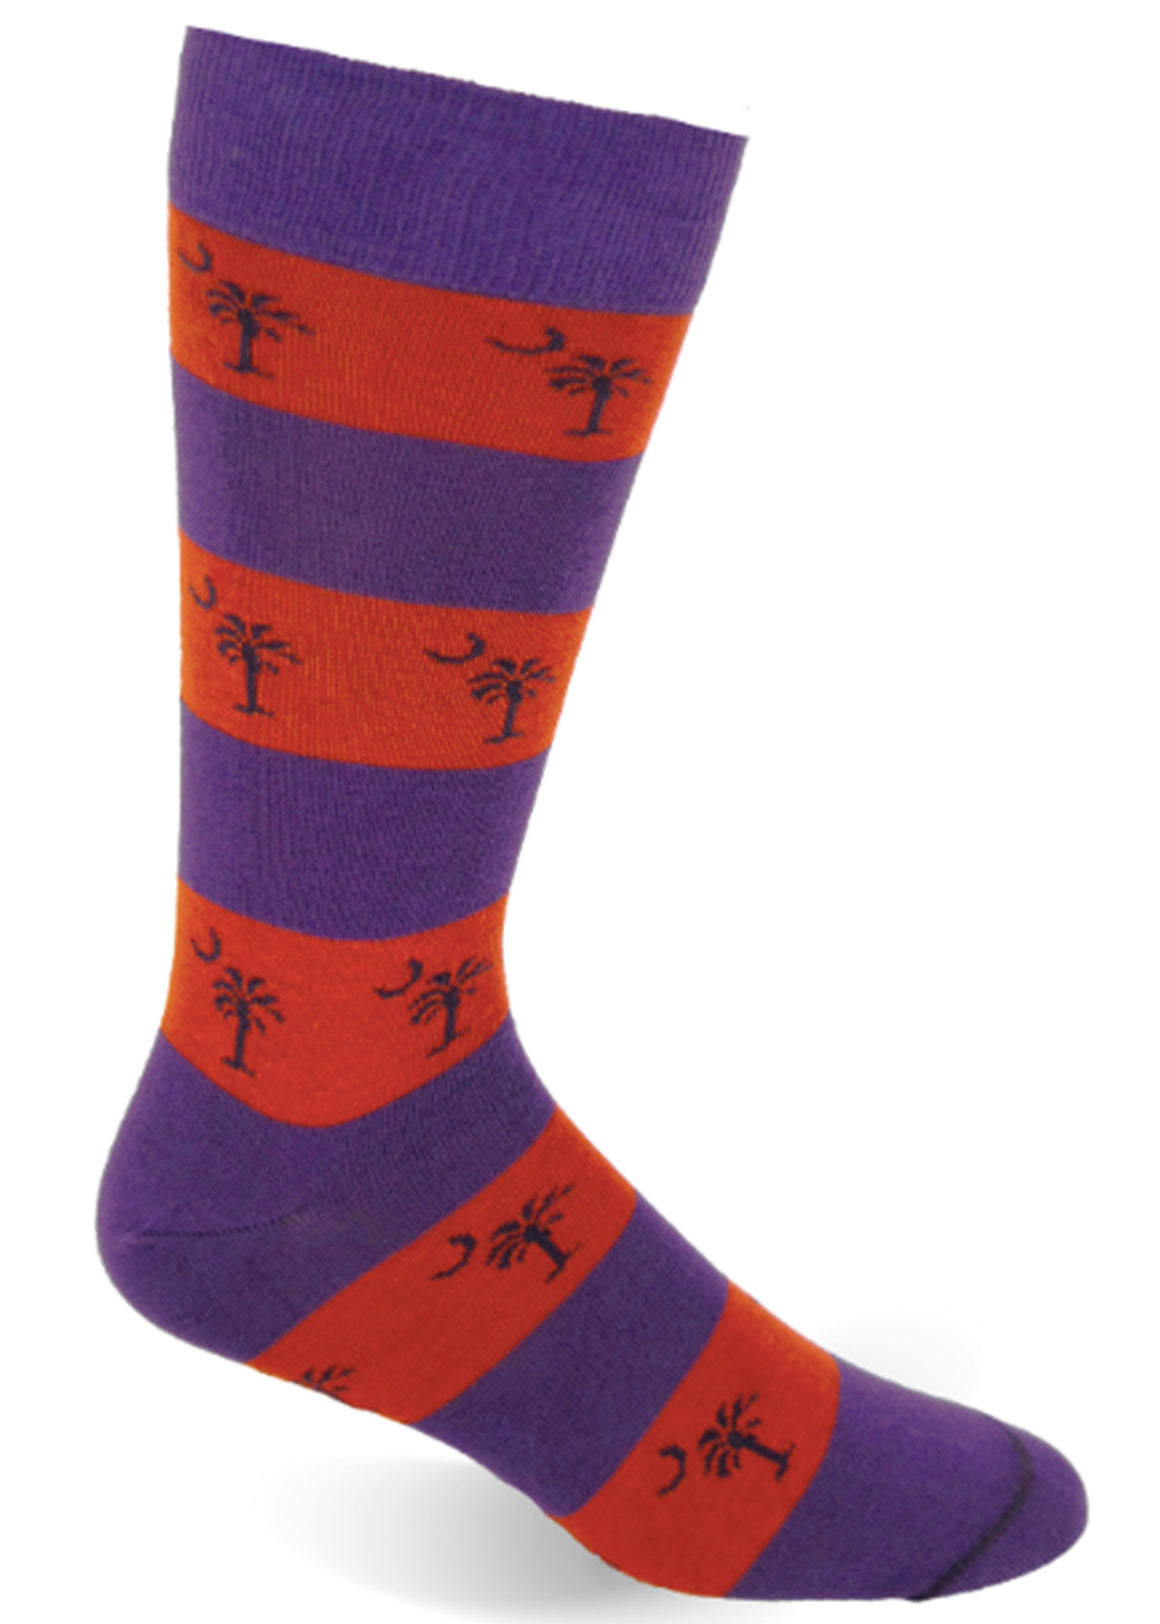 Palmetto Stripe Socks - Purple and Orange Stripe